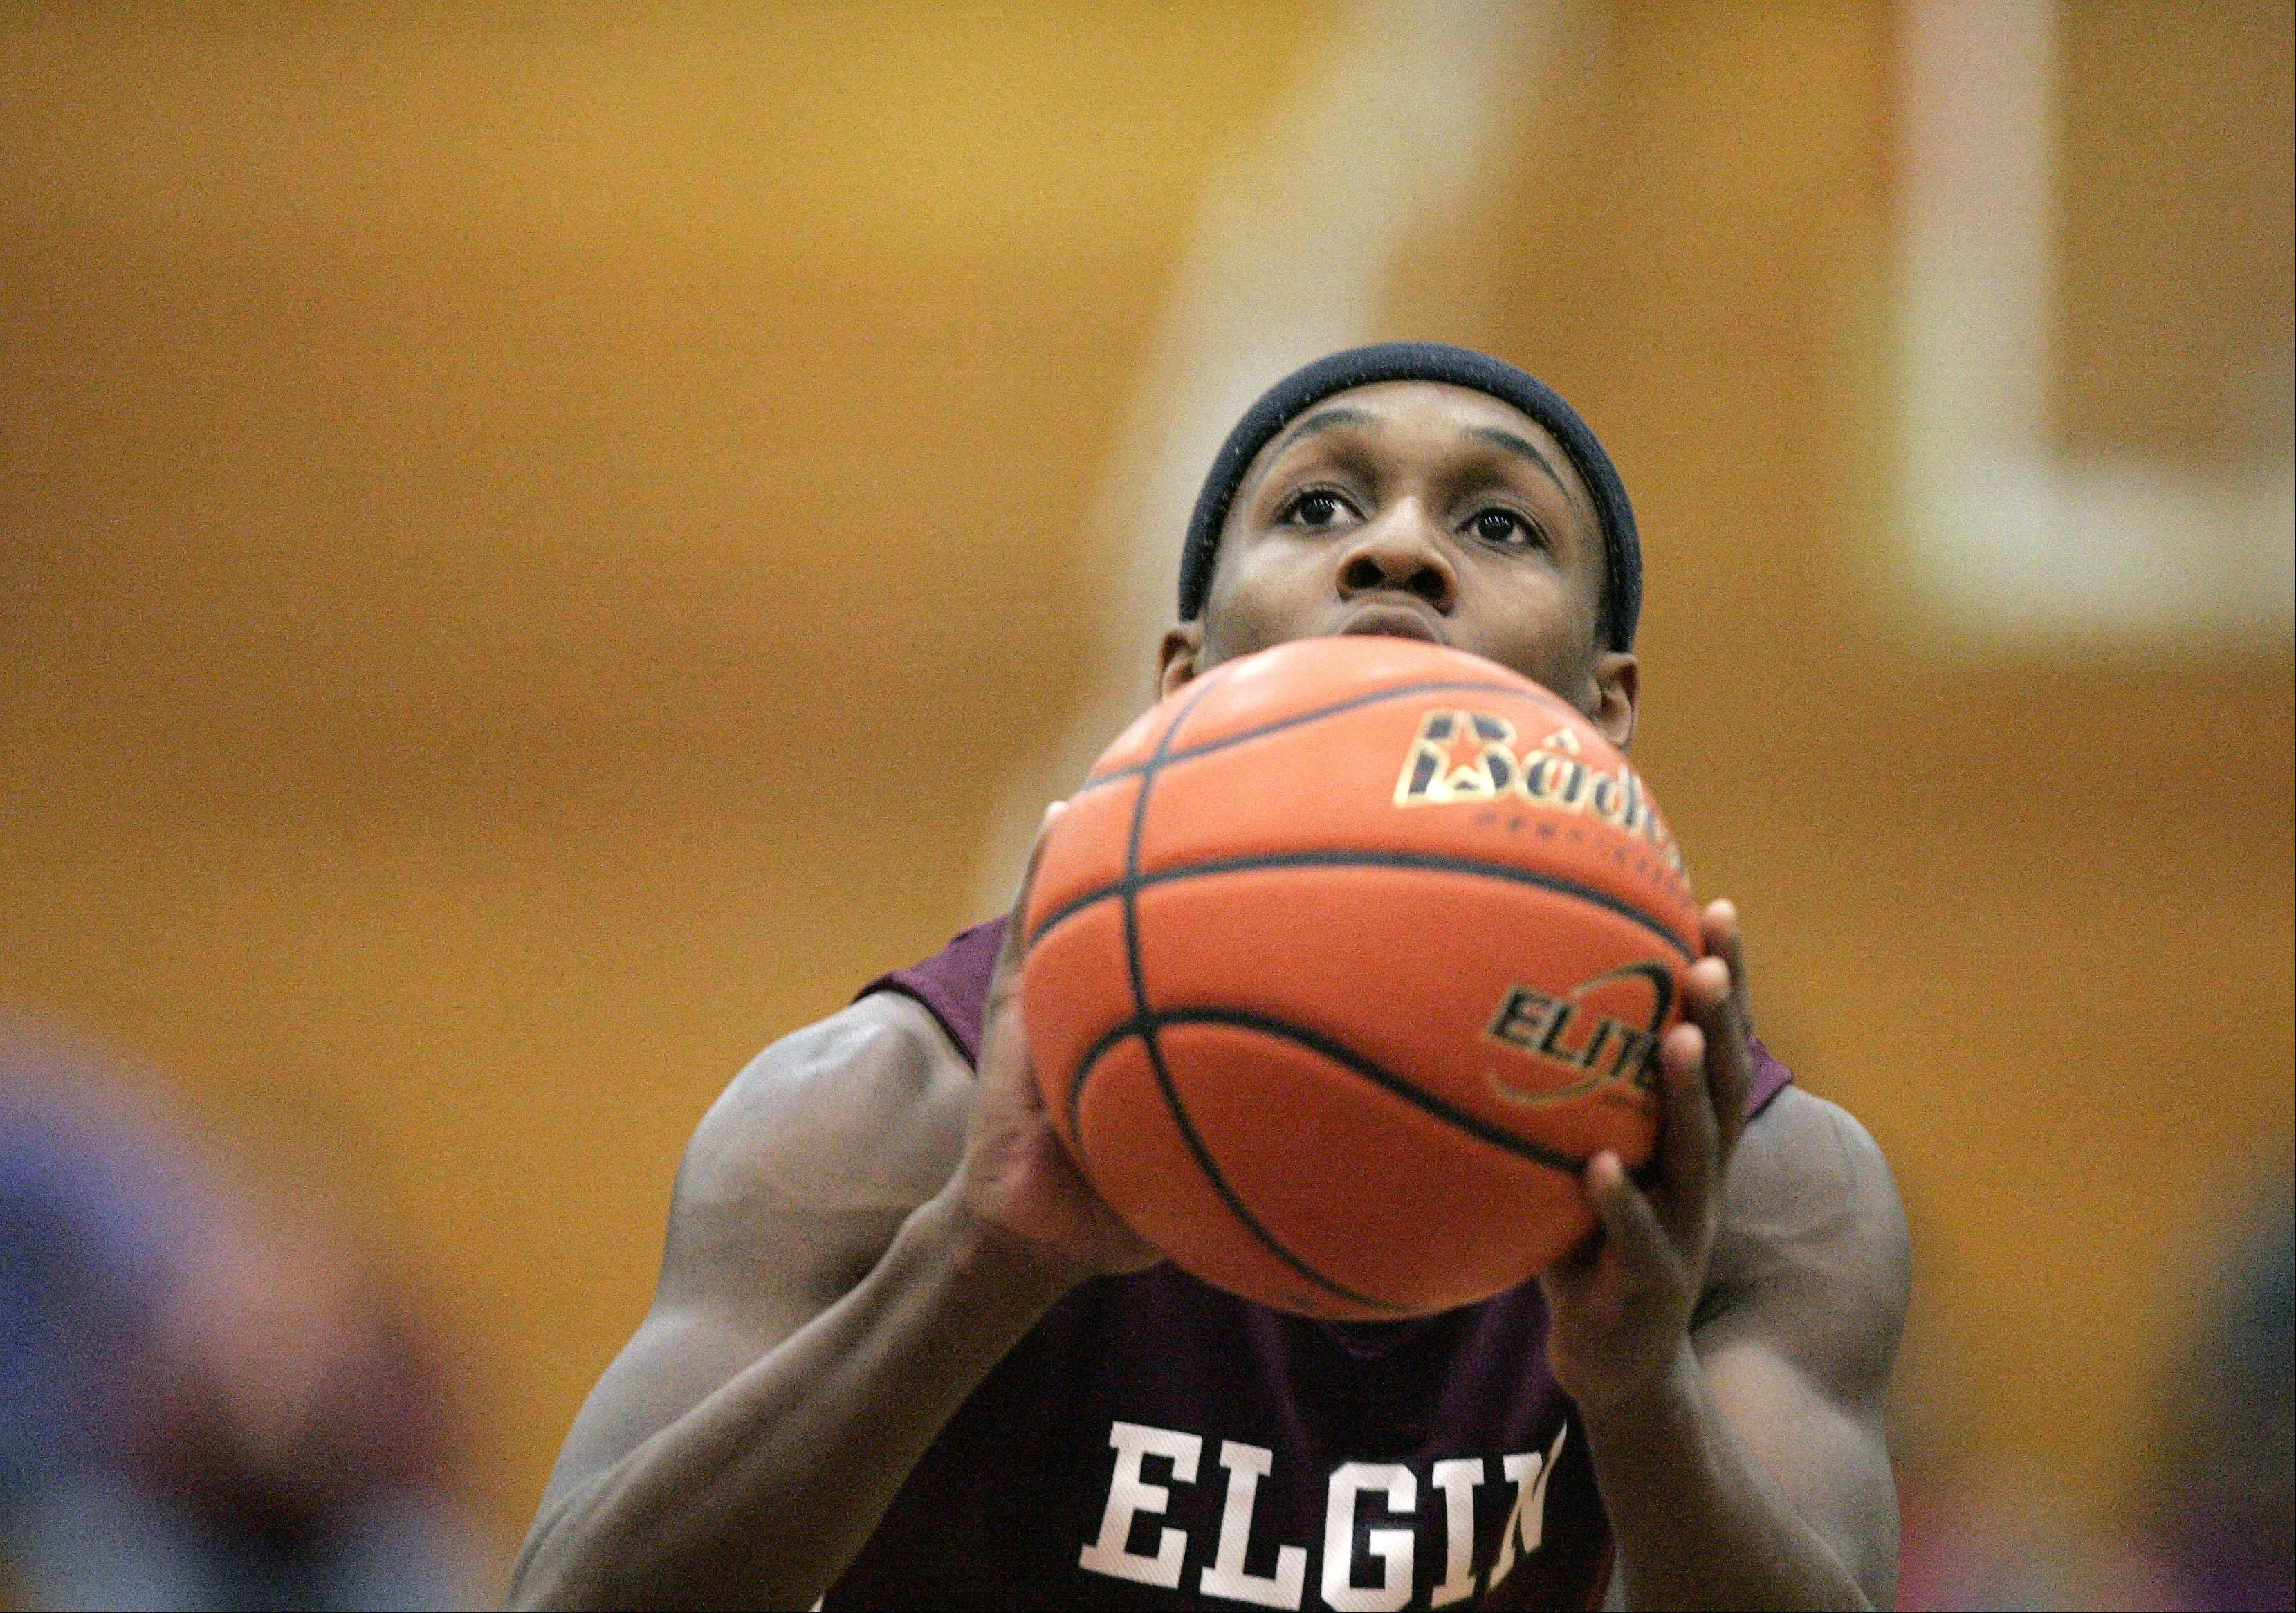 Images: Elgin vs Dundee-Crown boys basketball